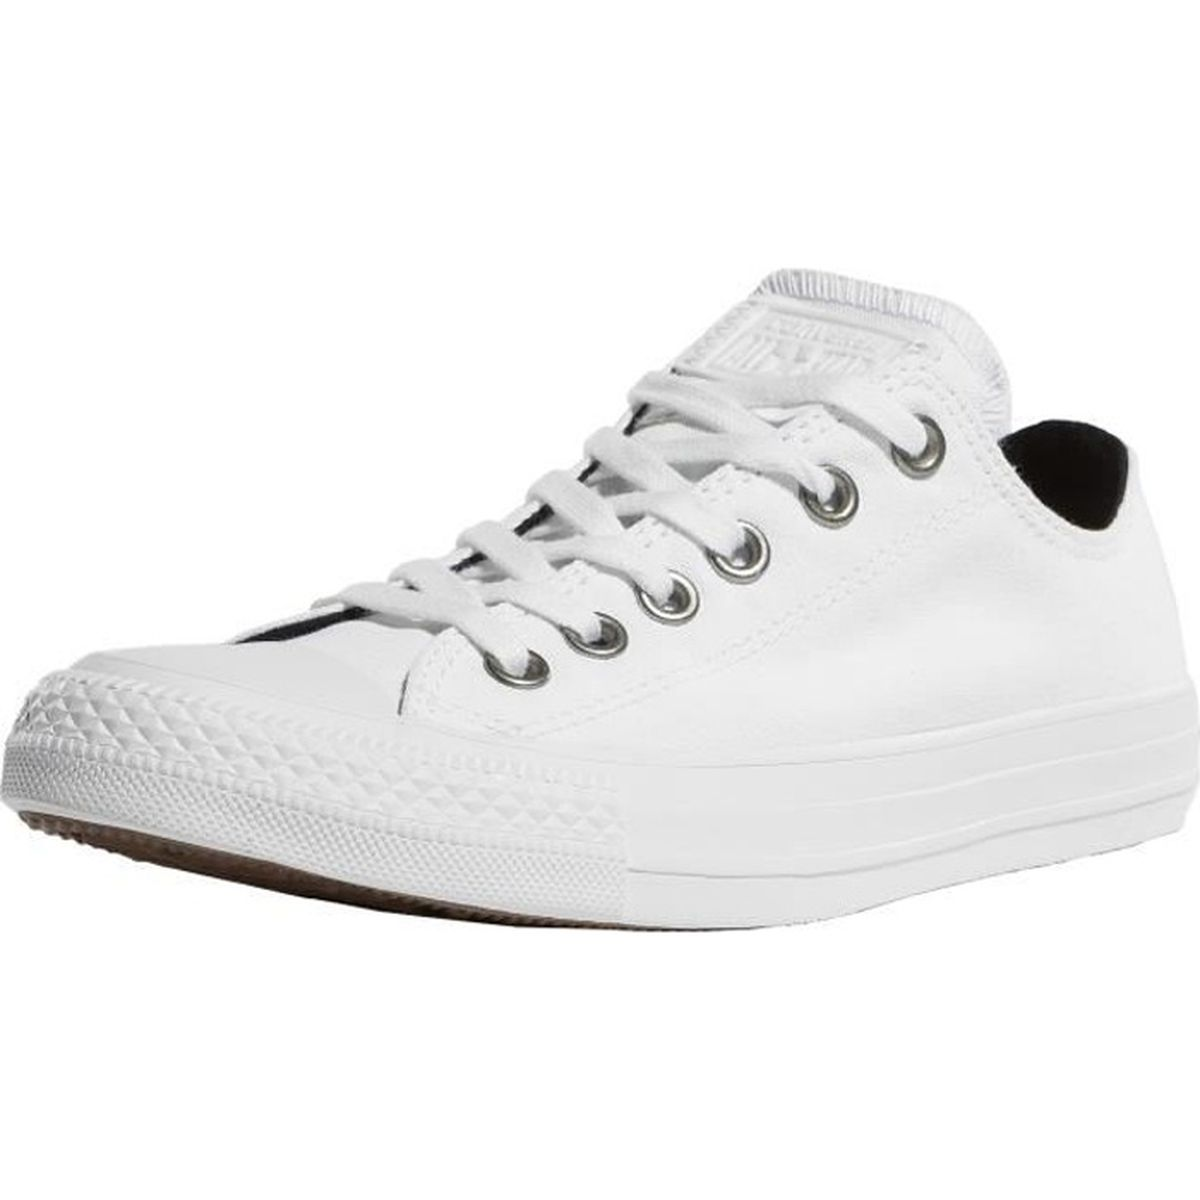 664821ae66110 Converse Femme Chaussures   Baskets Chuck Taylor All Star Ox Blanc ...